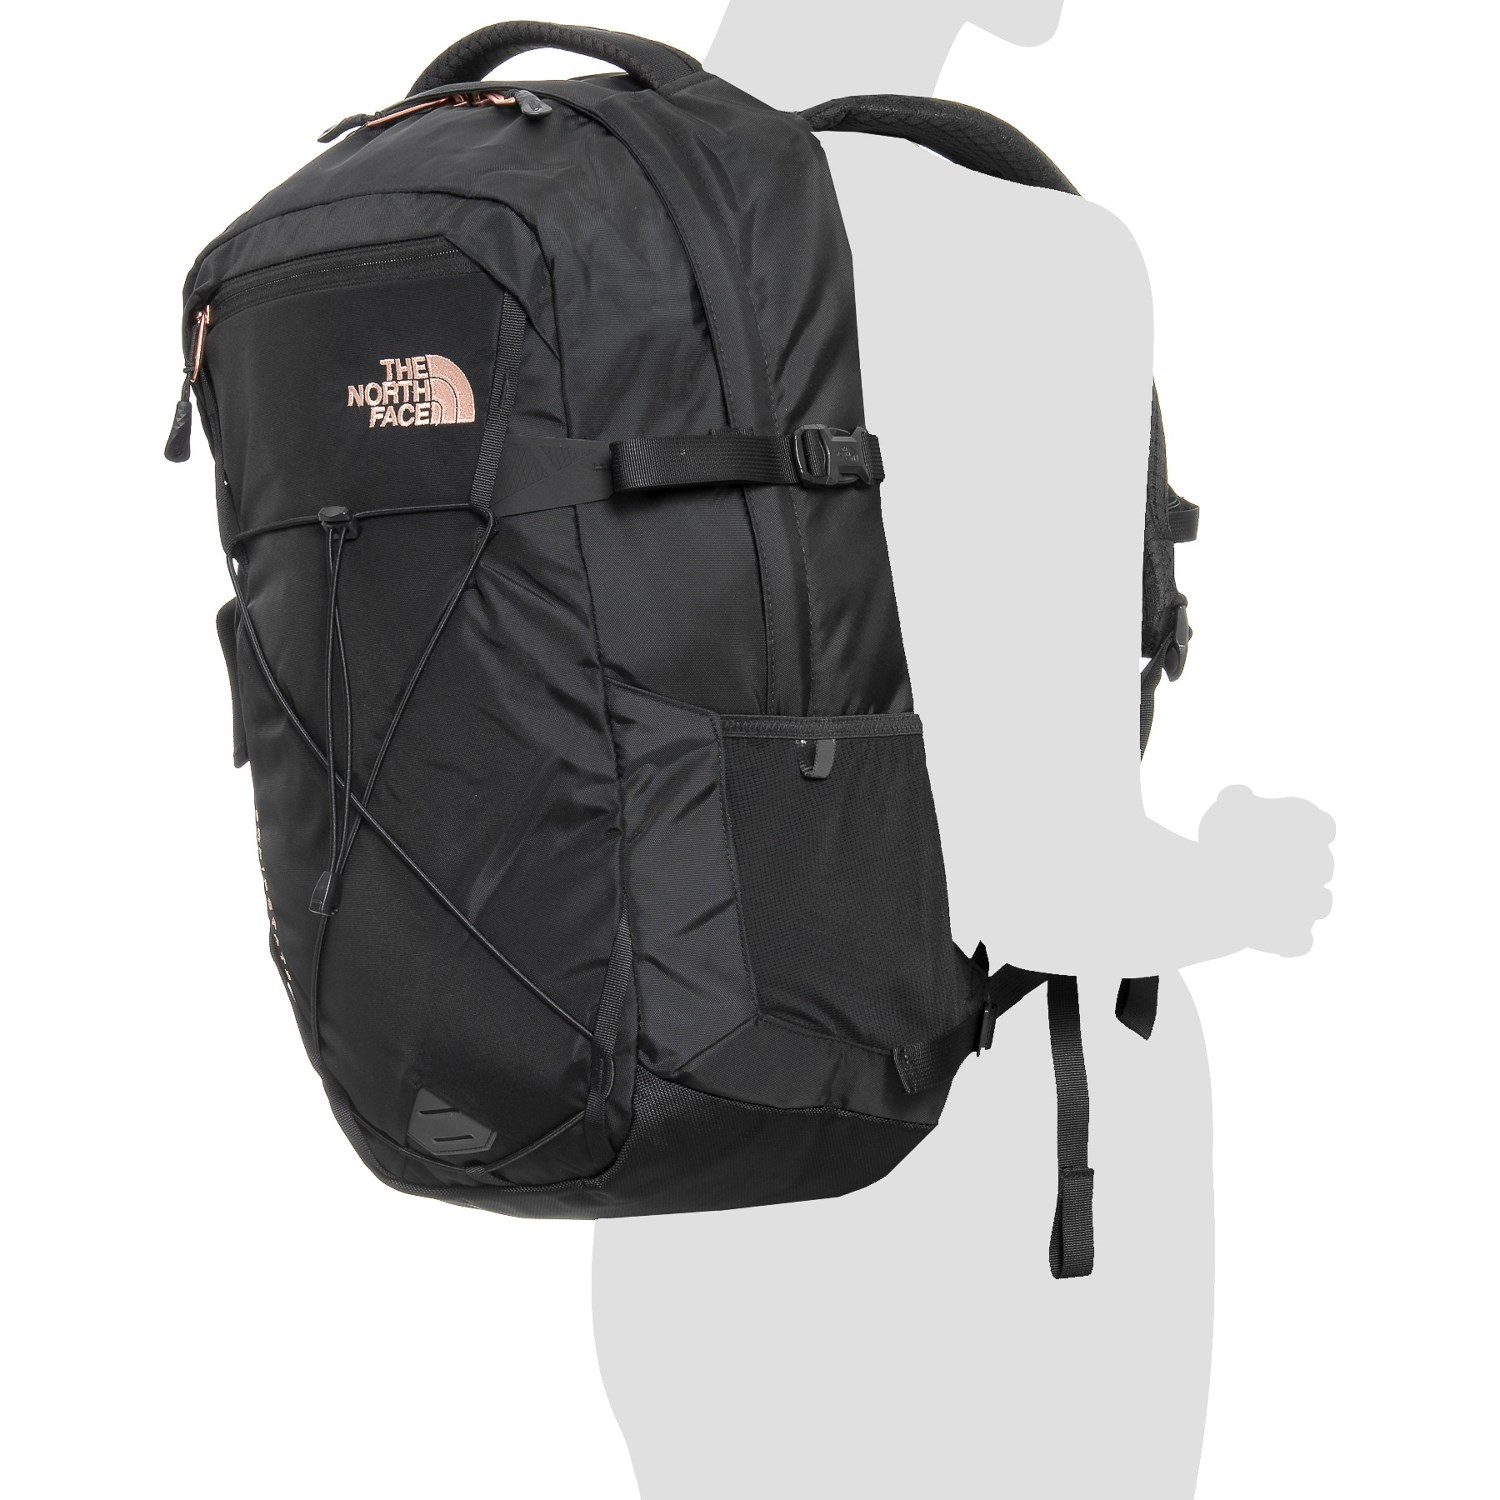 c1d4c1fd0 North Face Black Backpack With Rose Gold Zippers - CEAGESP